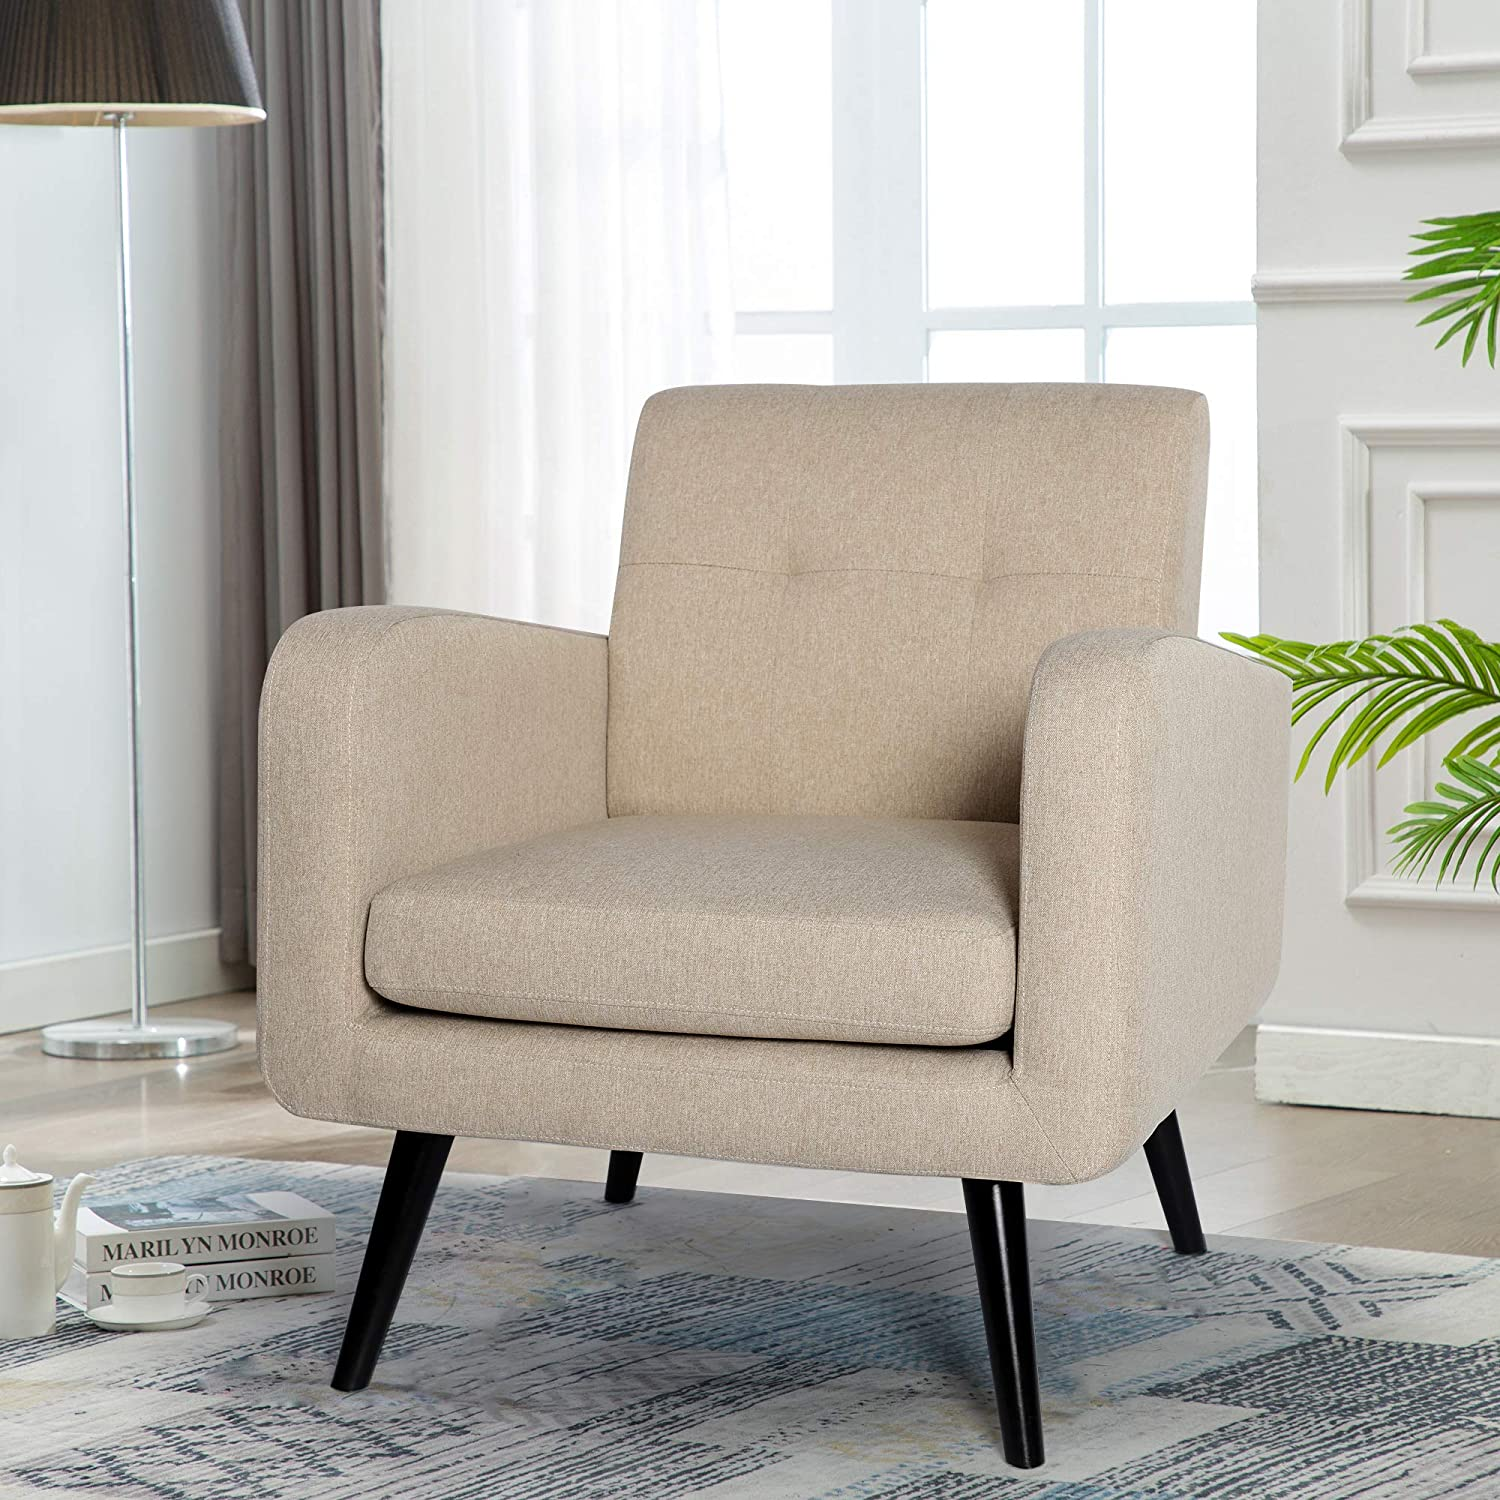 Buy Mid Century Modern Fabric Arm Chairs for Living Room, Living ...